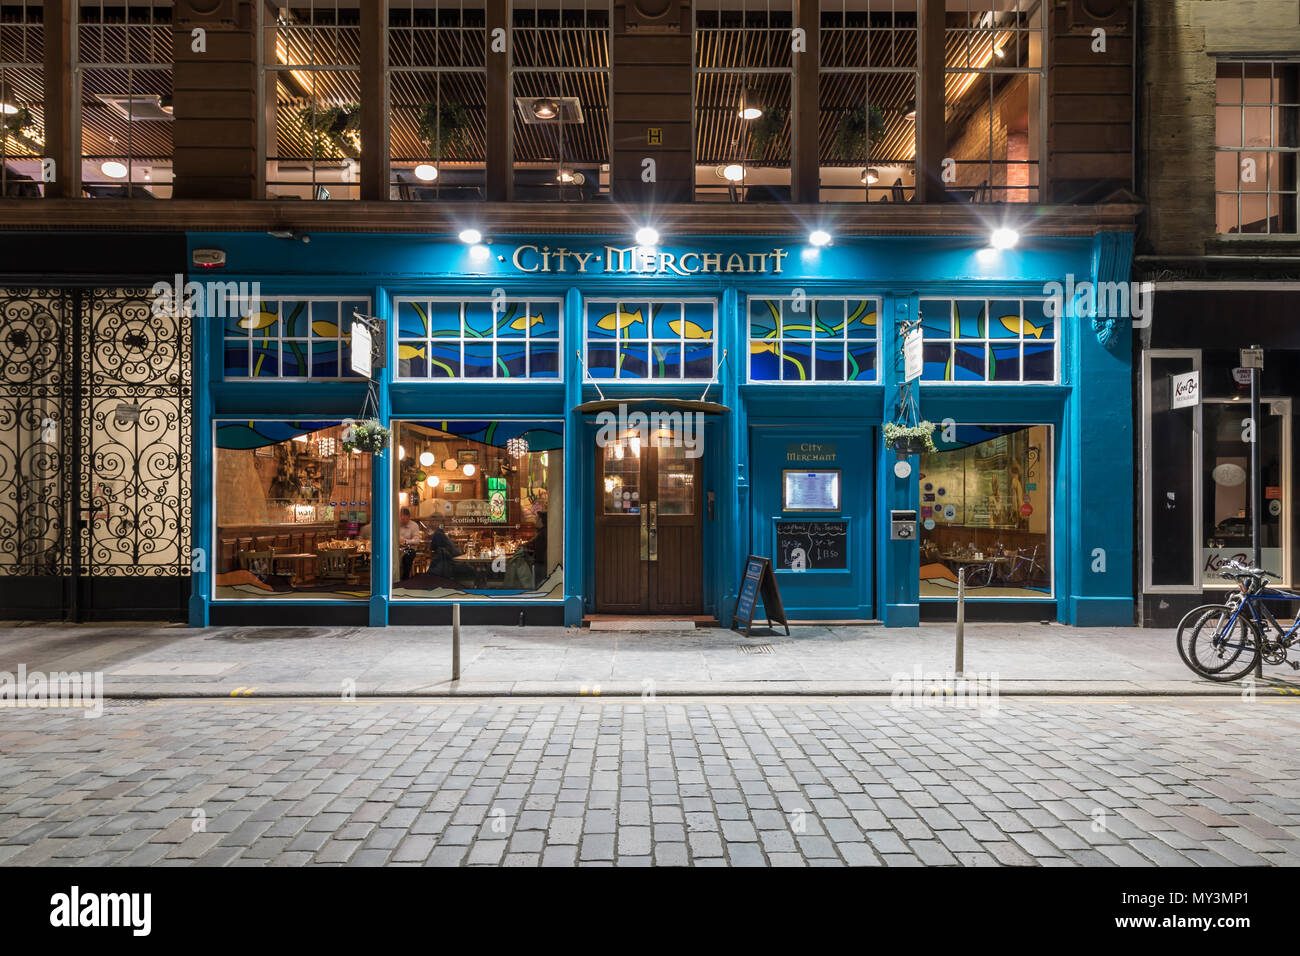 City Merchant Restaurant in Candleriggs Glasgow - Stock Image